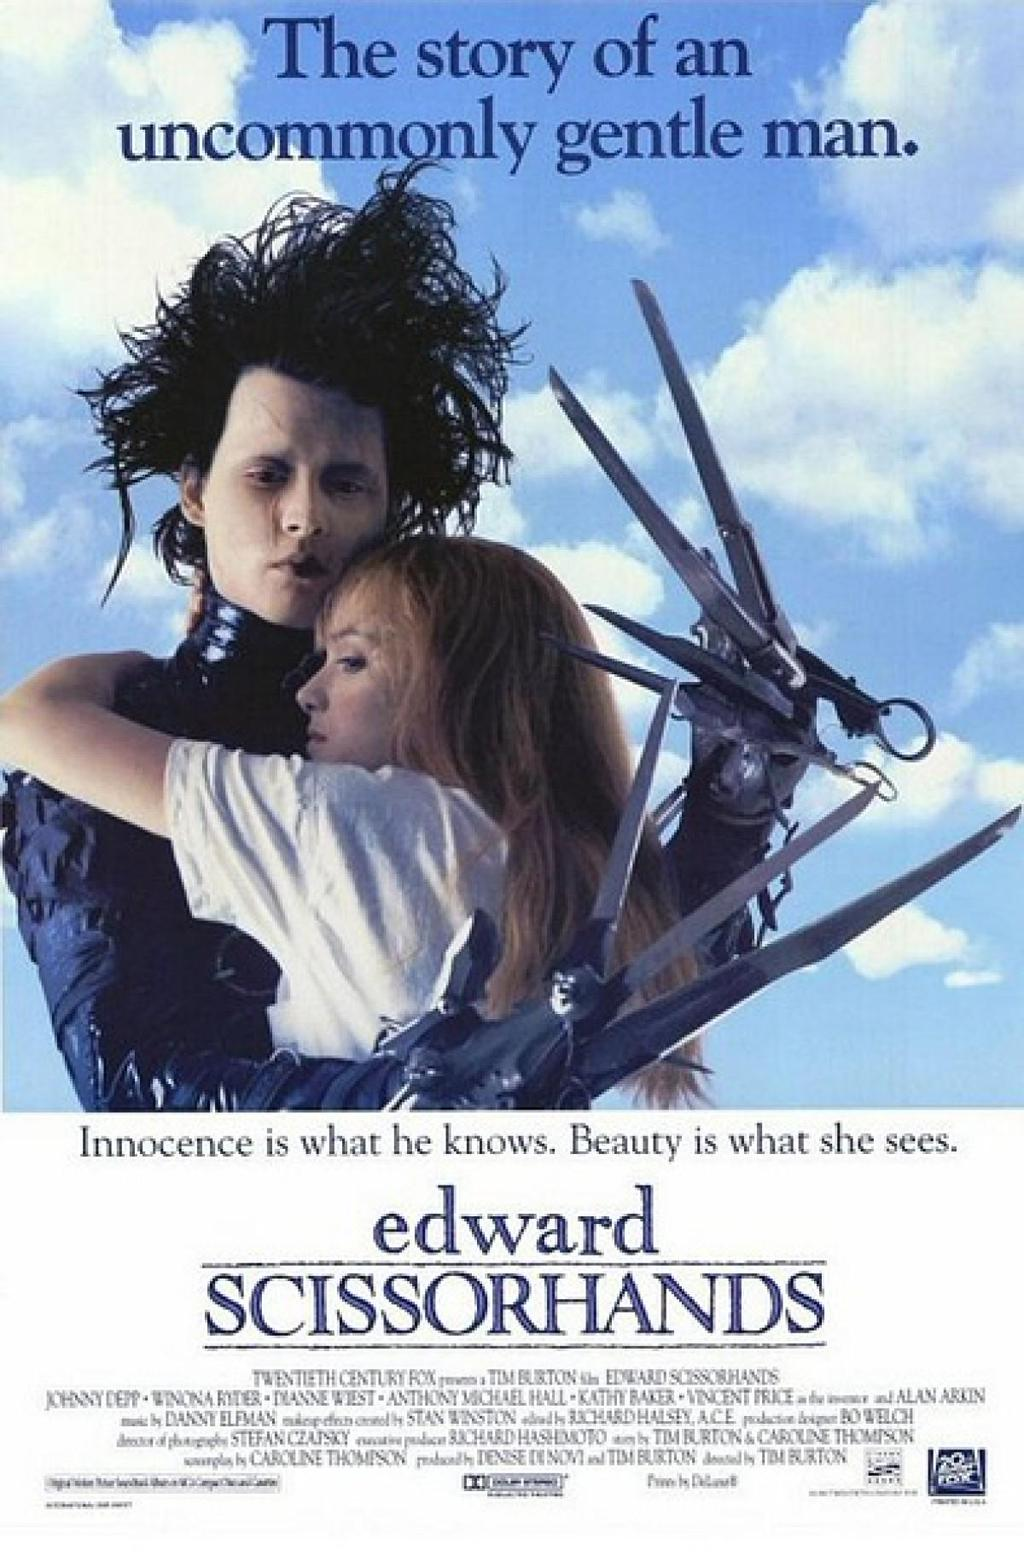 I have to write a movie review essay for the movie Edward Scissorhands...Help!? (Second attempt.)?